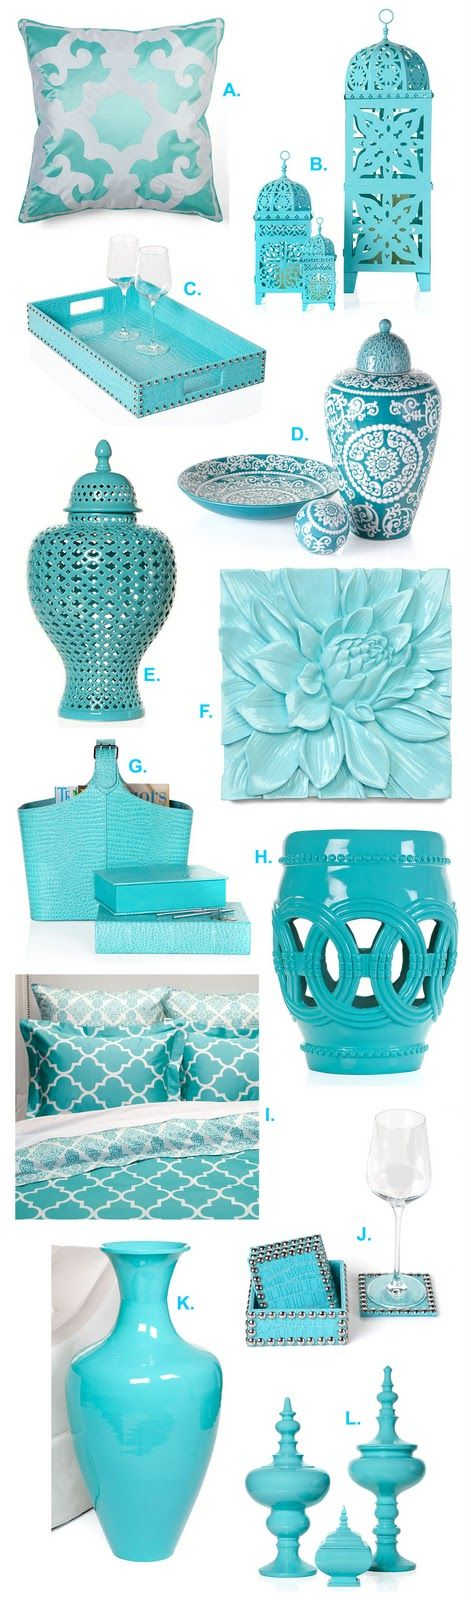 Pin By Abby Edwards On Room Blues And Turquises Pinterest Color